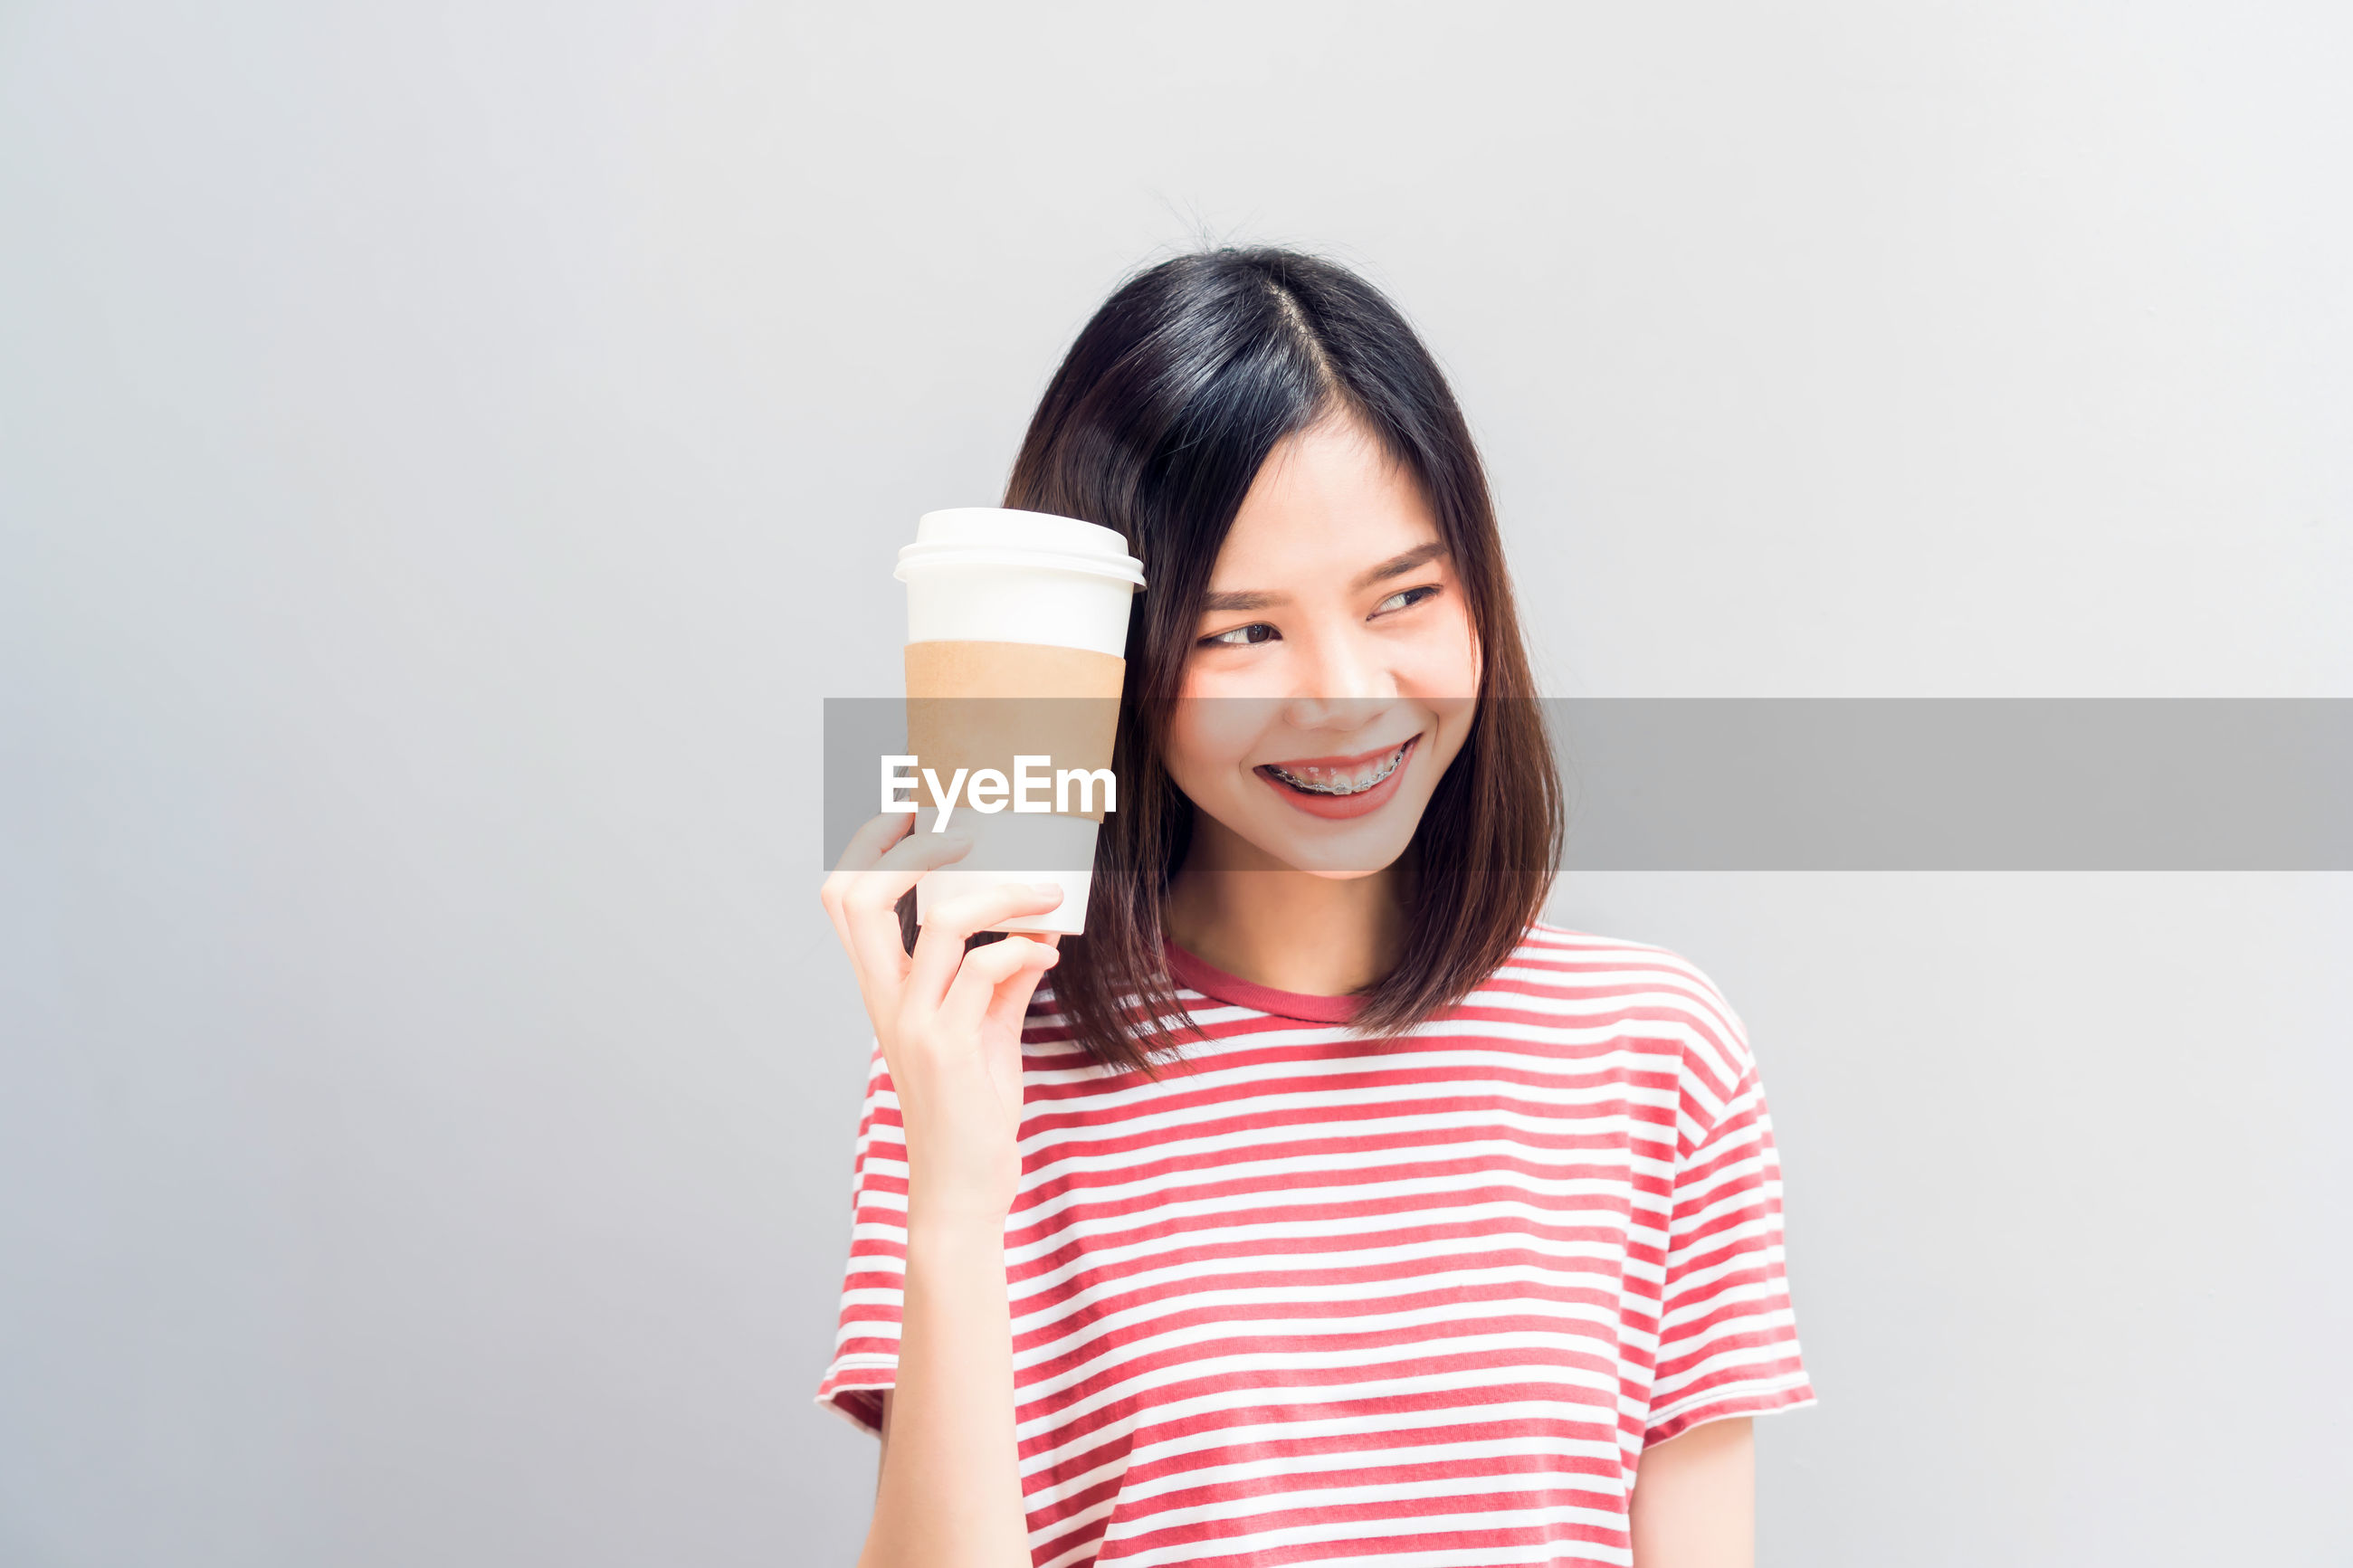 Smiling young woman standing with disposable cup against white background